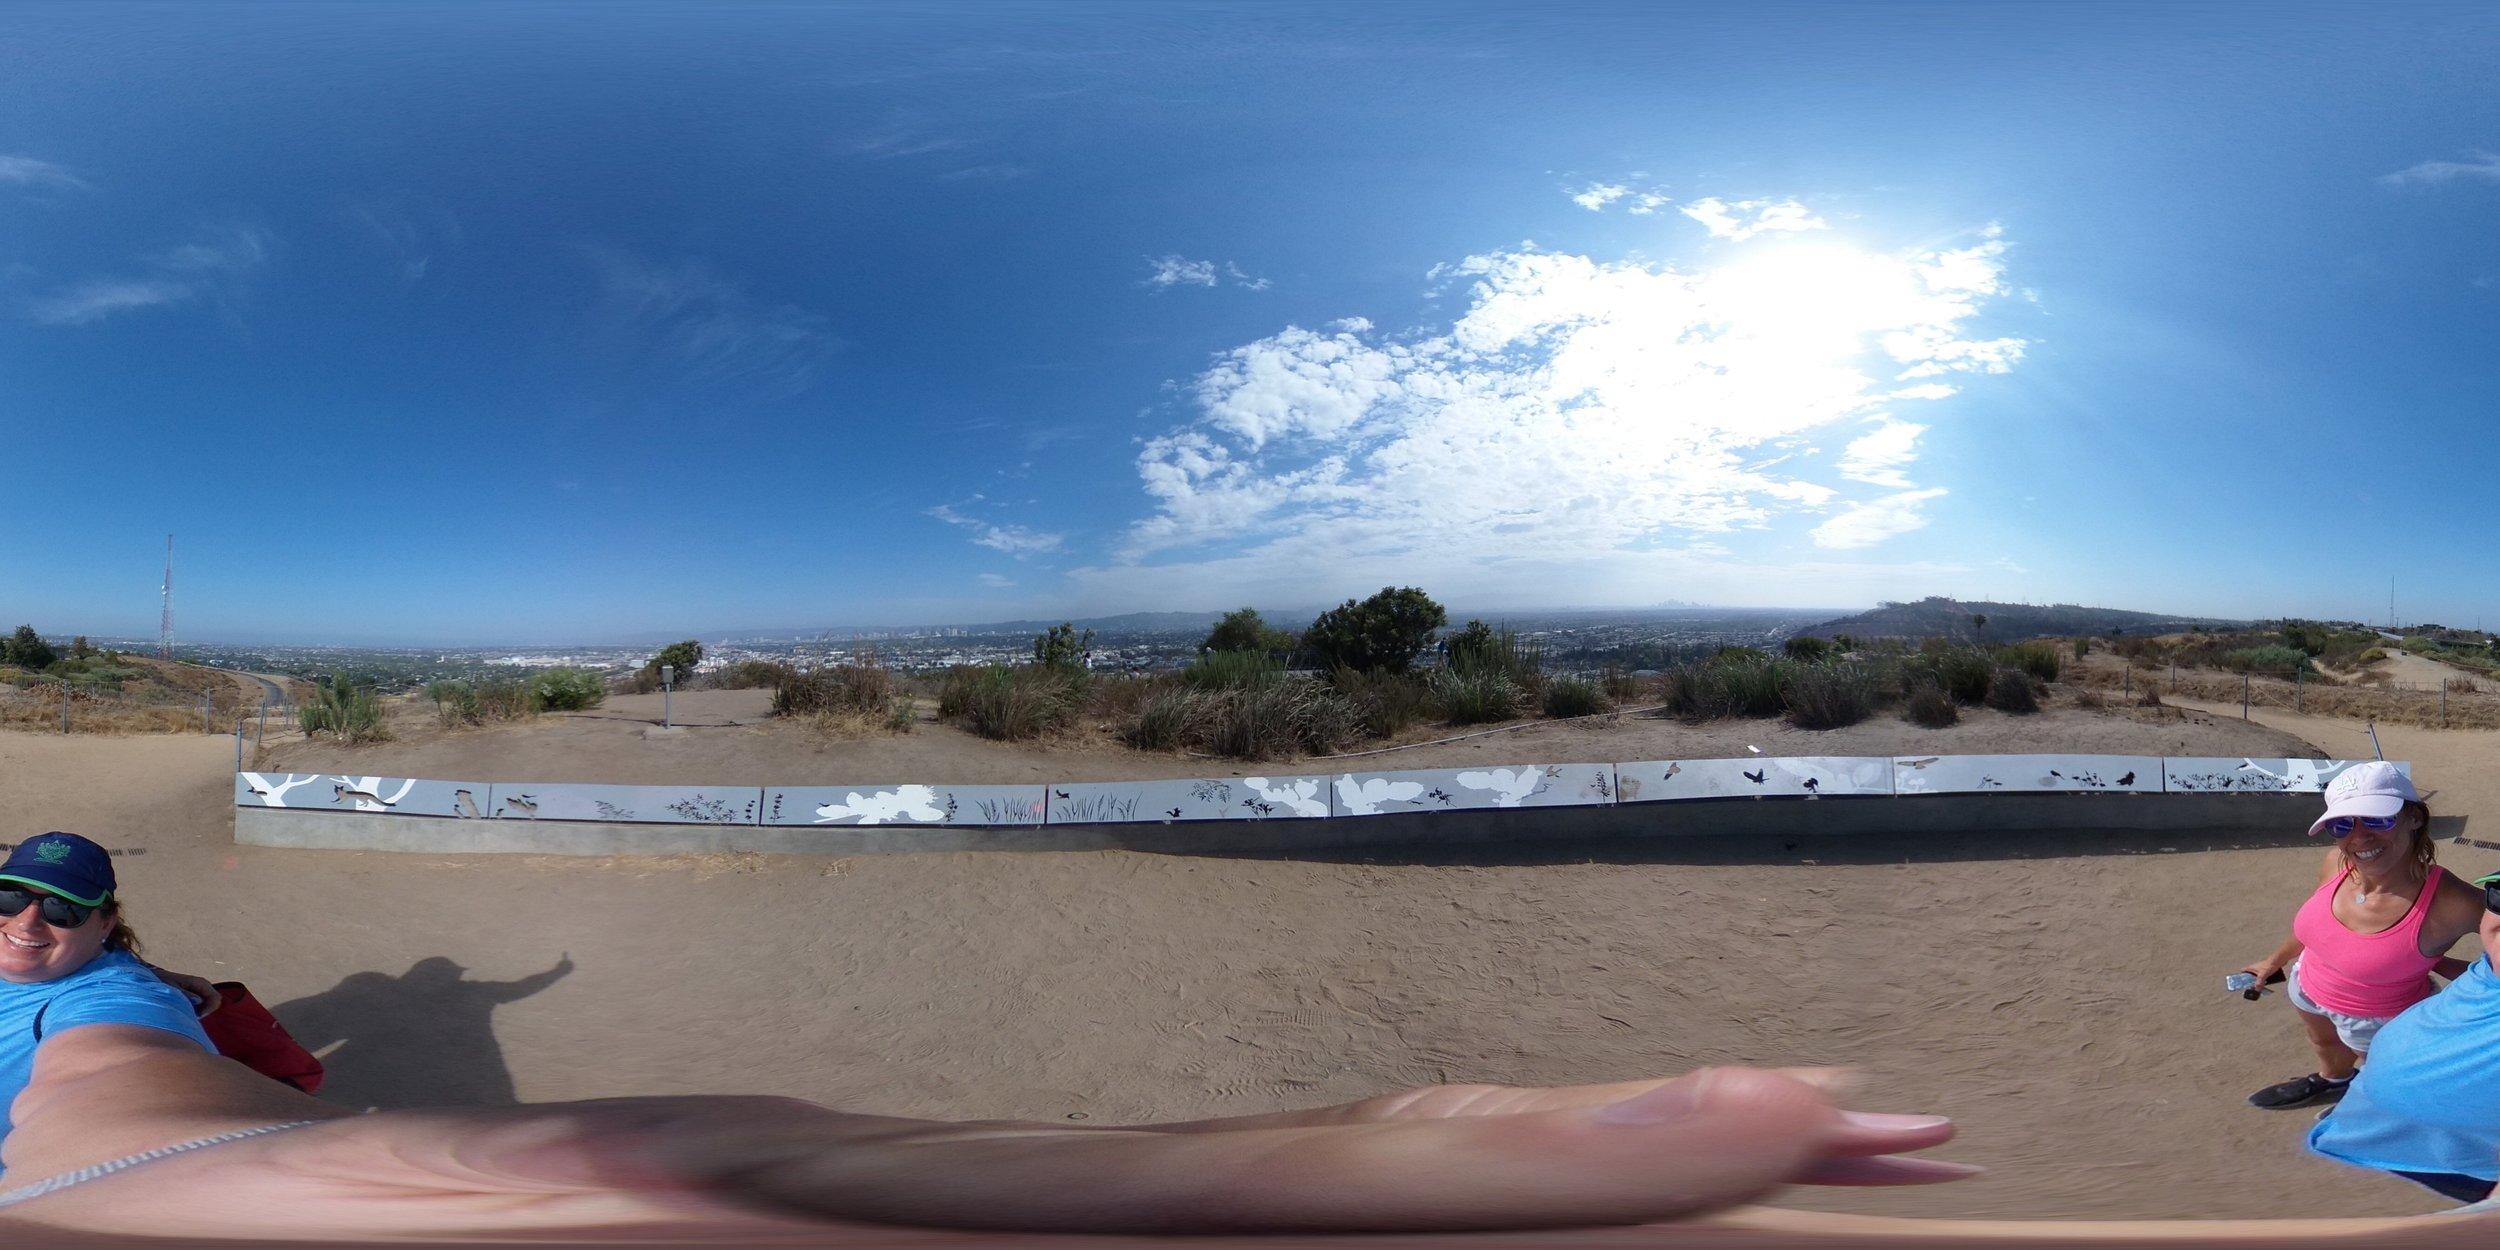 Same photo as above in it's equirectangular format